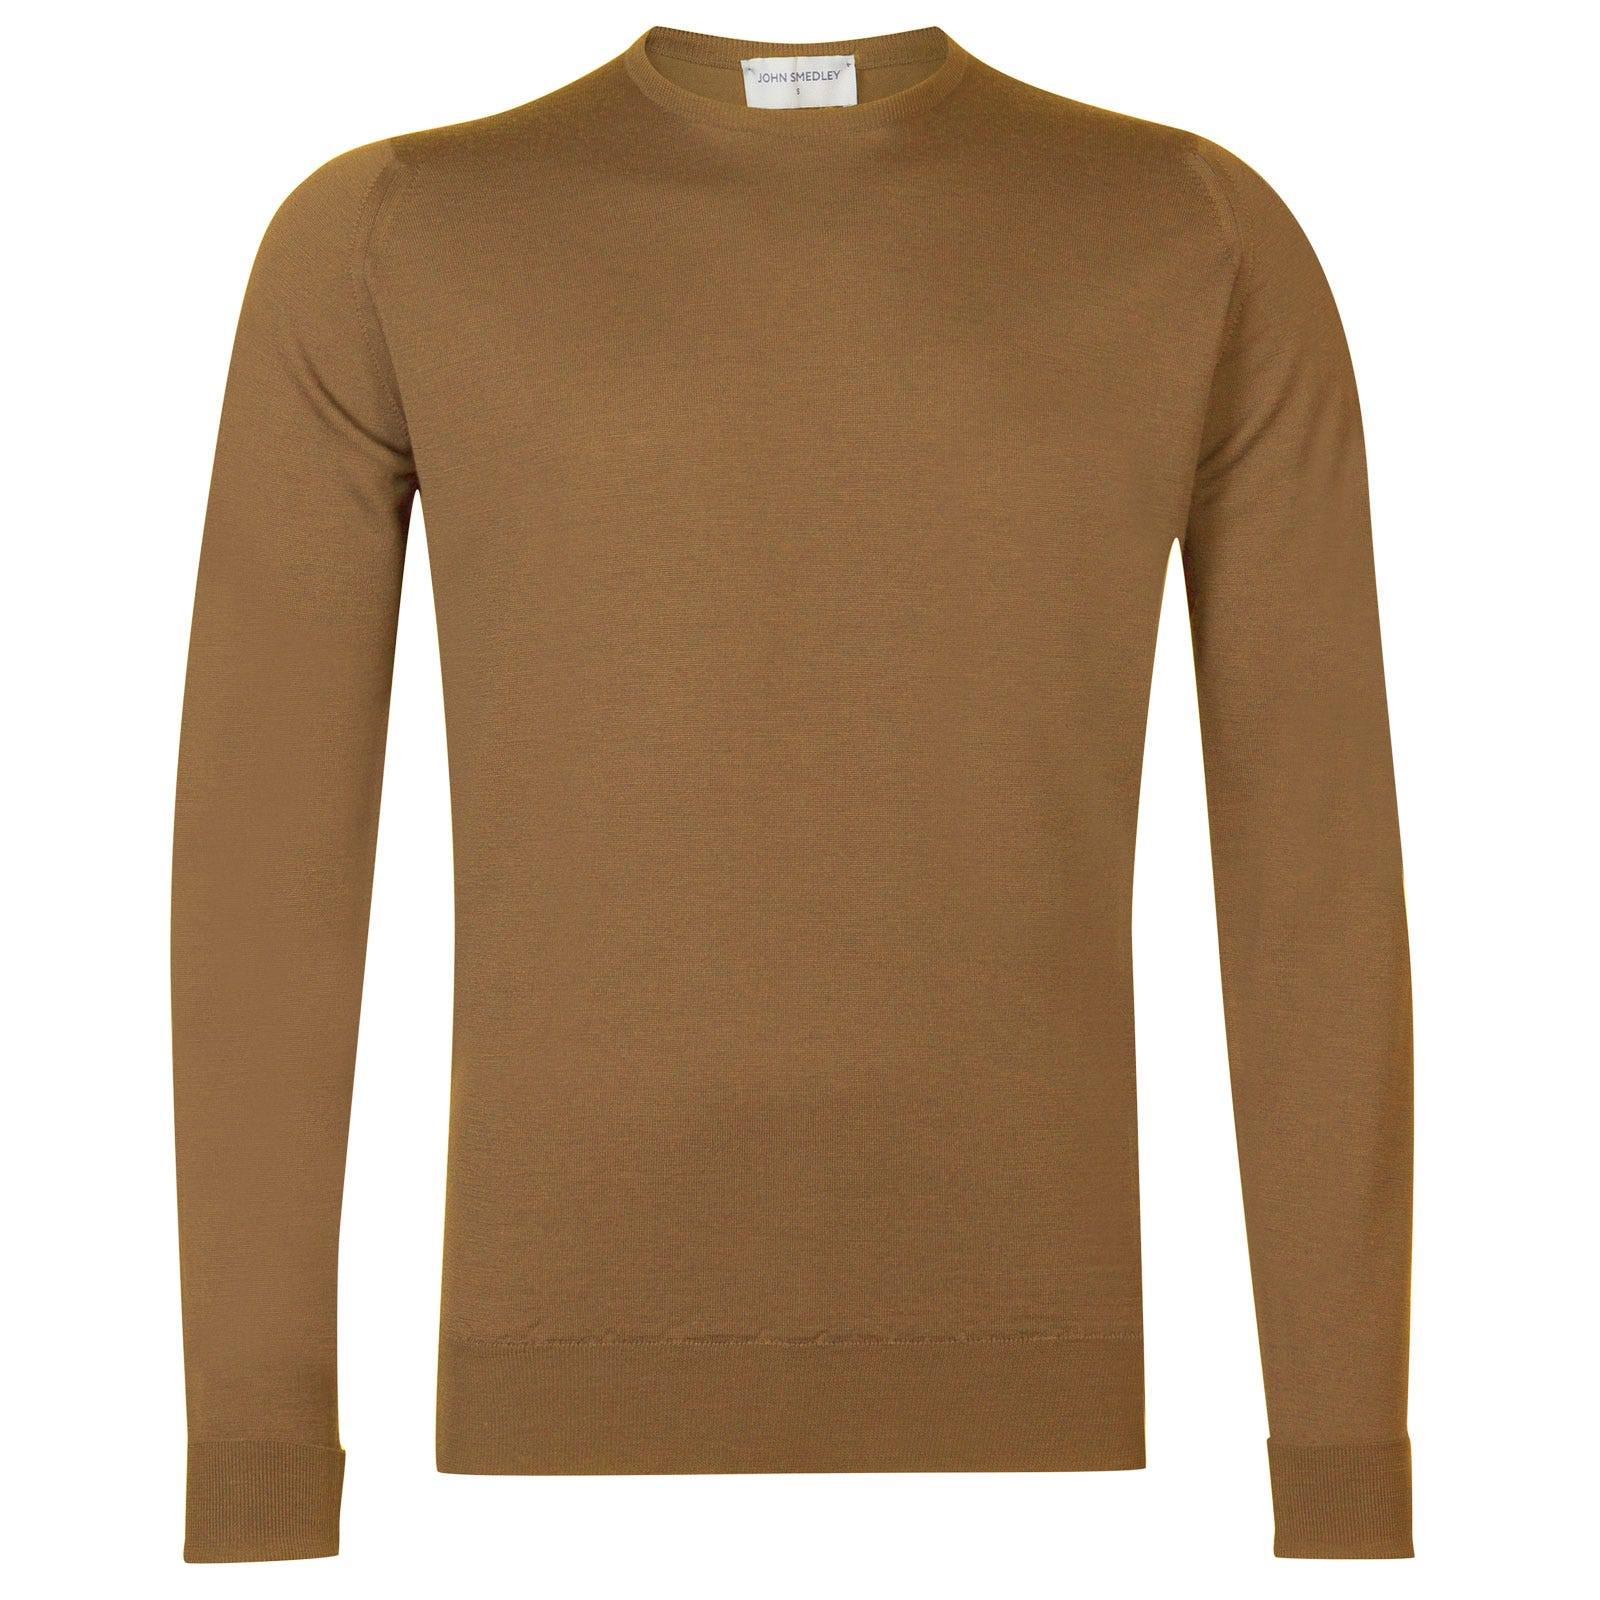 John Smedley marcus Merino Wool Pullover in Camel-S